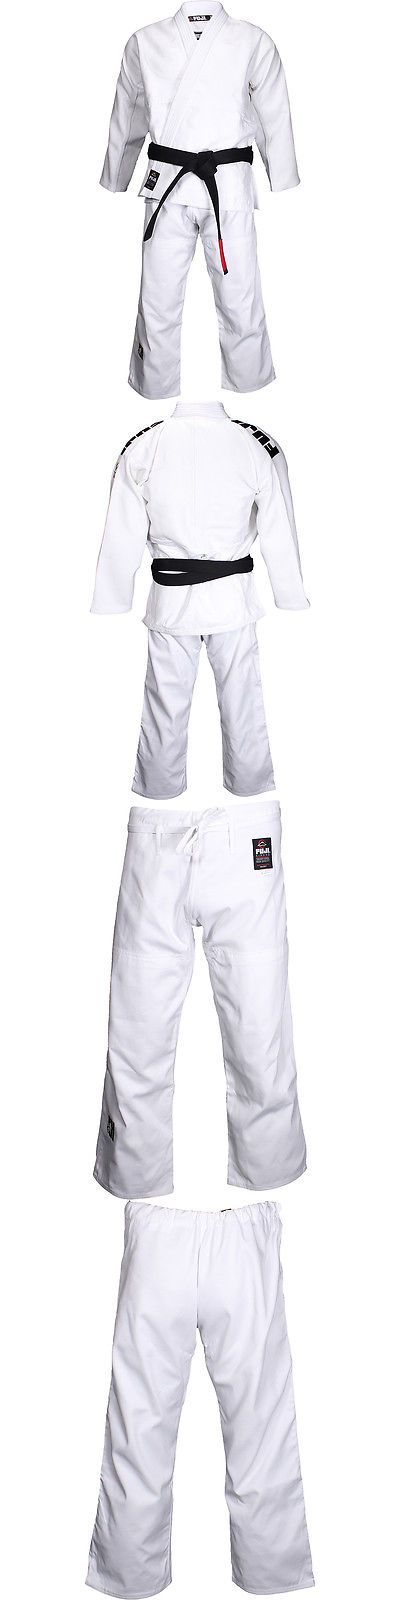 Uniforms and Gis 179774: Fuji Deluxe Double Weave Judo Gi -> BUY IT NOW ONLY: $98.99 on eBay!